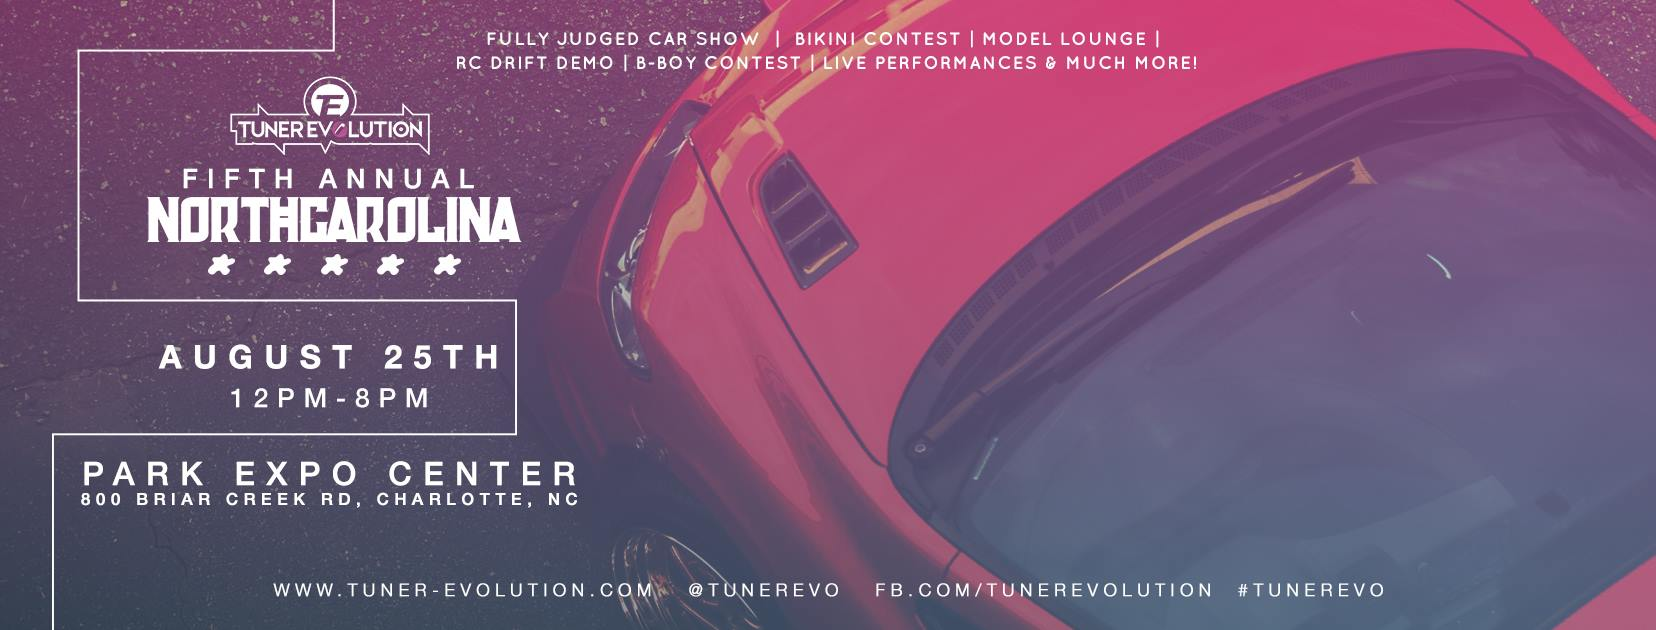 Tuner Evolution 2018 Charlotte NC Flyer